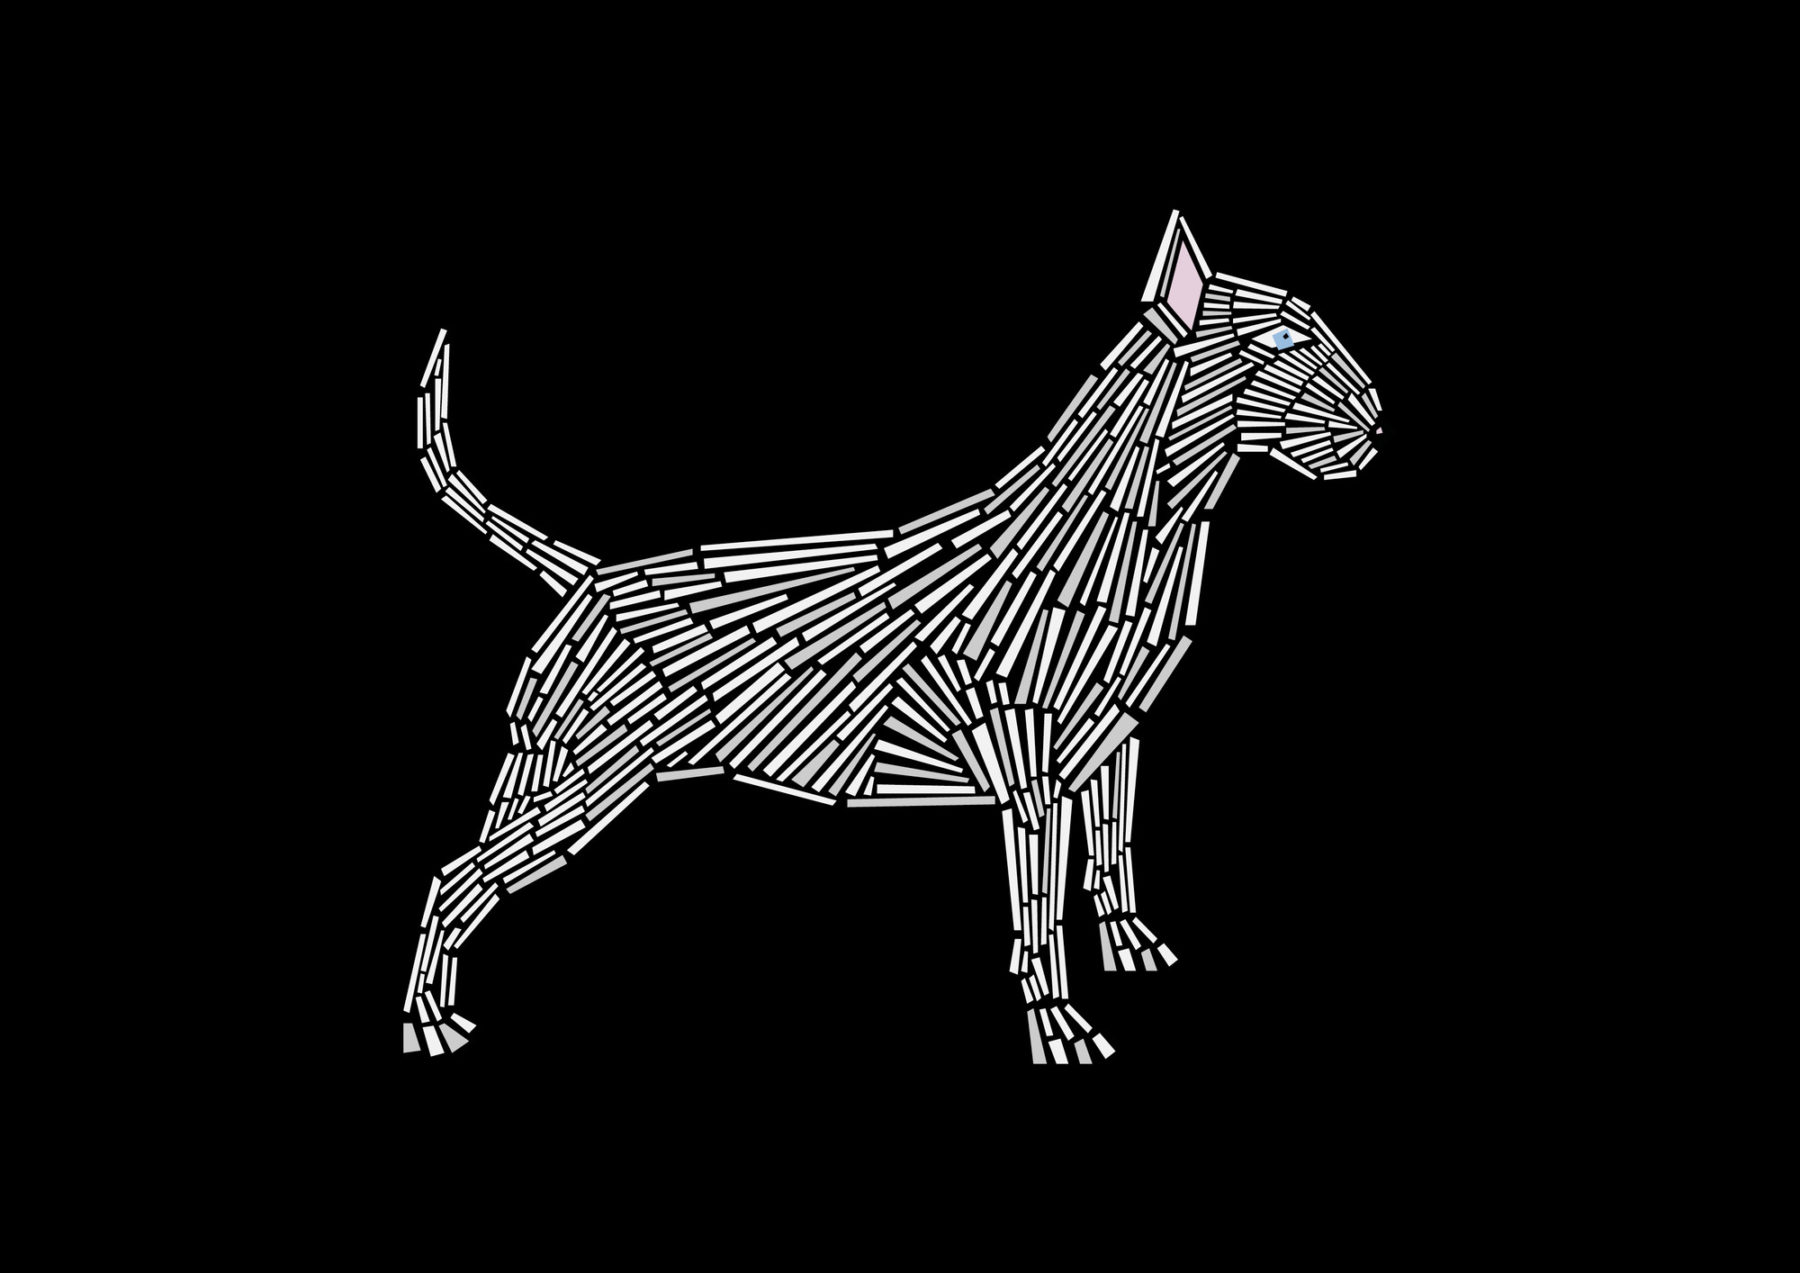 naomi turco Fifty dogs with graphic lines 25